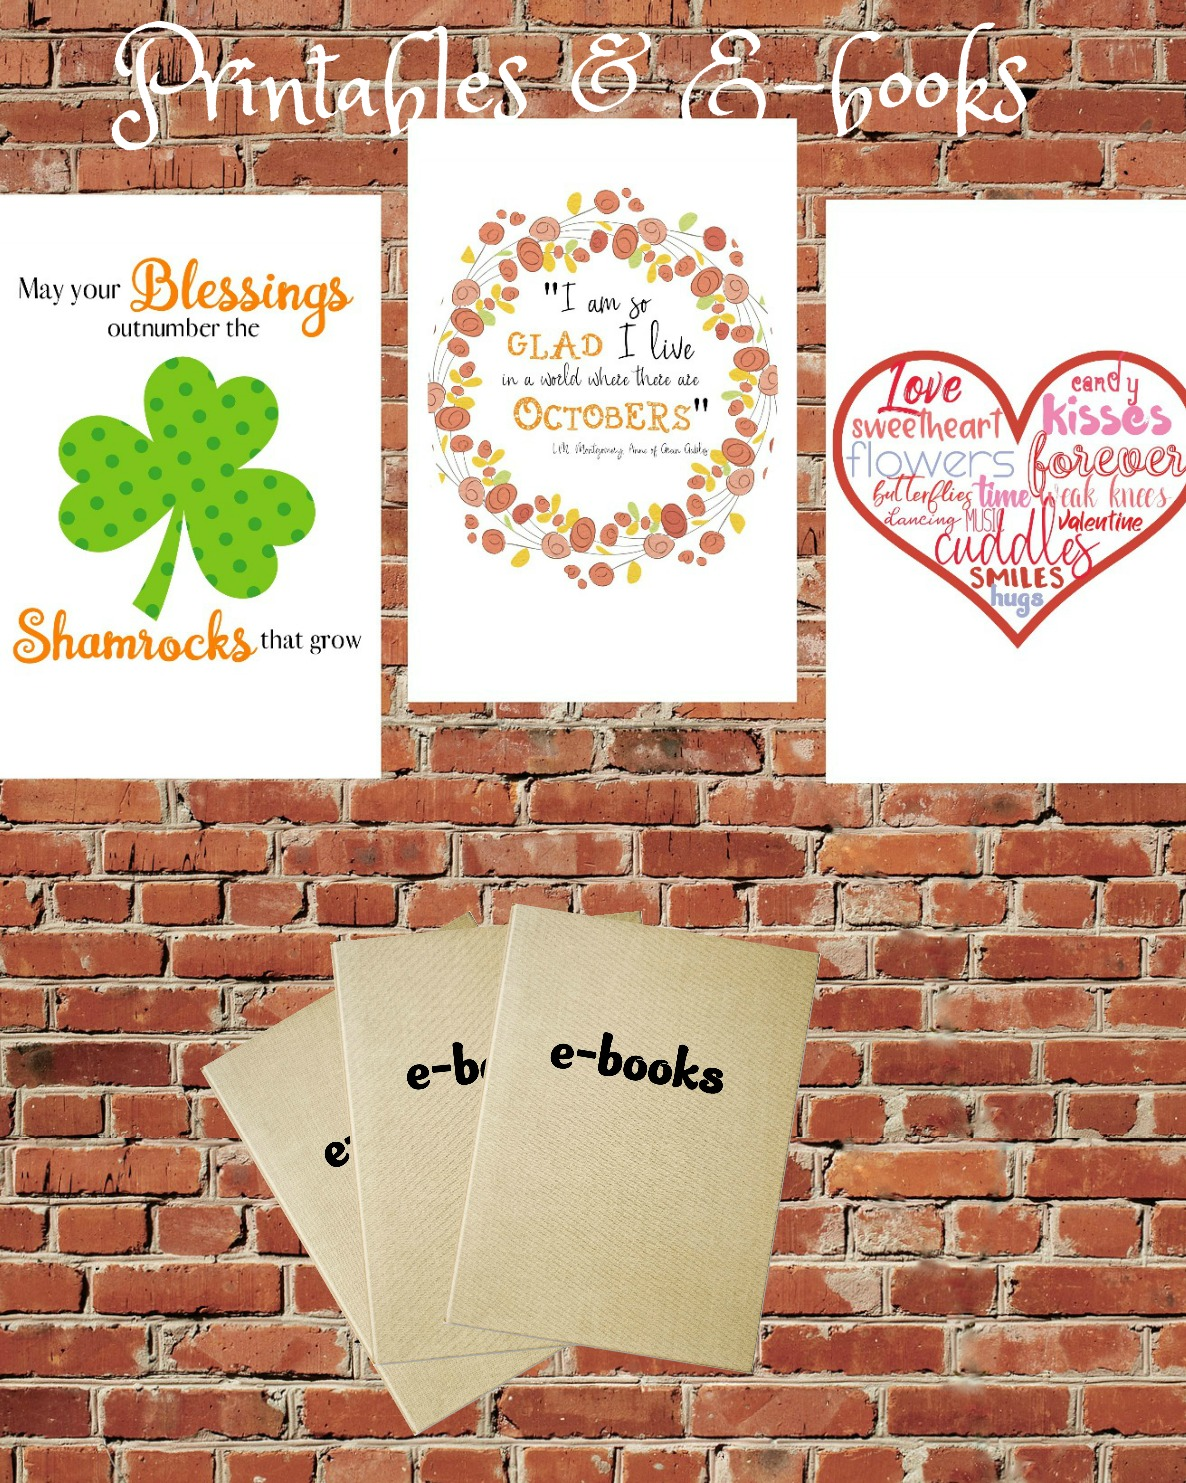 Printables & E-books